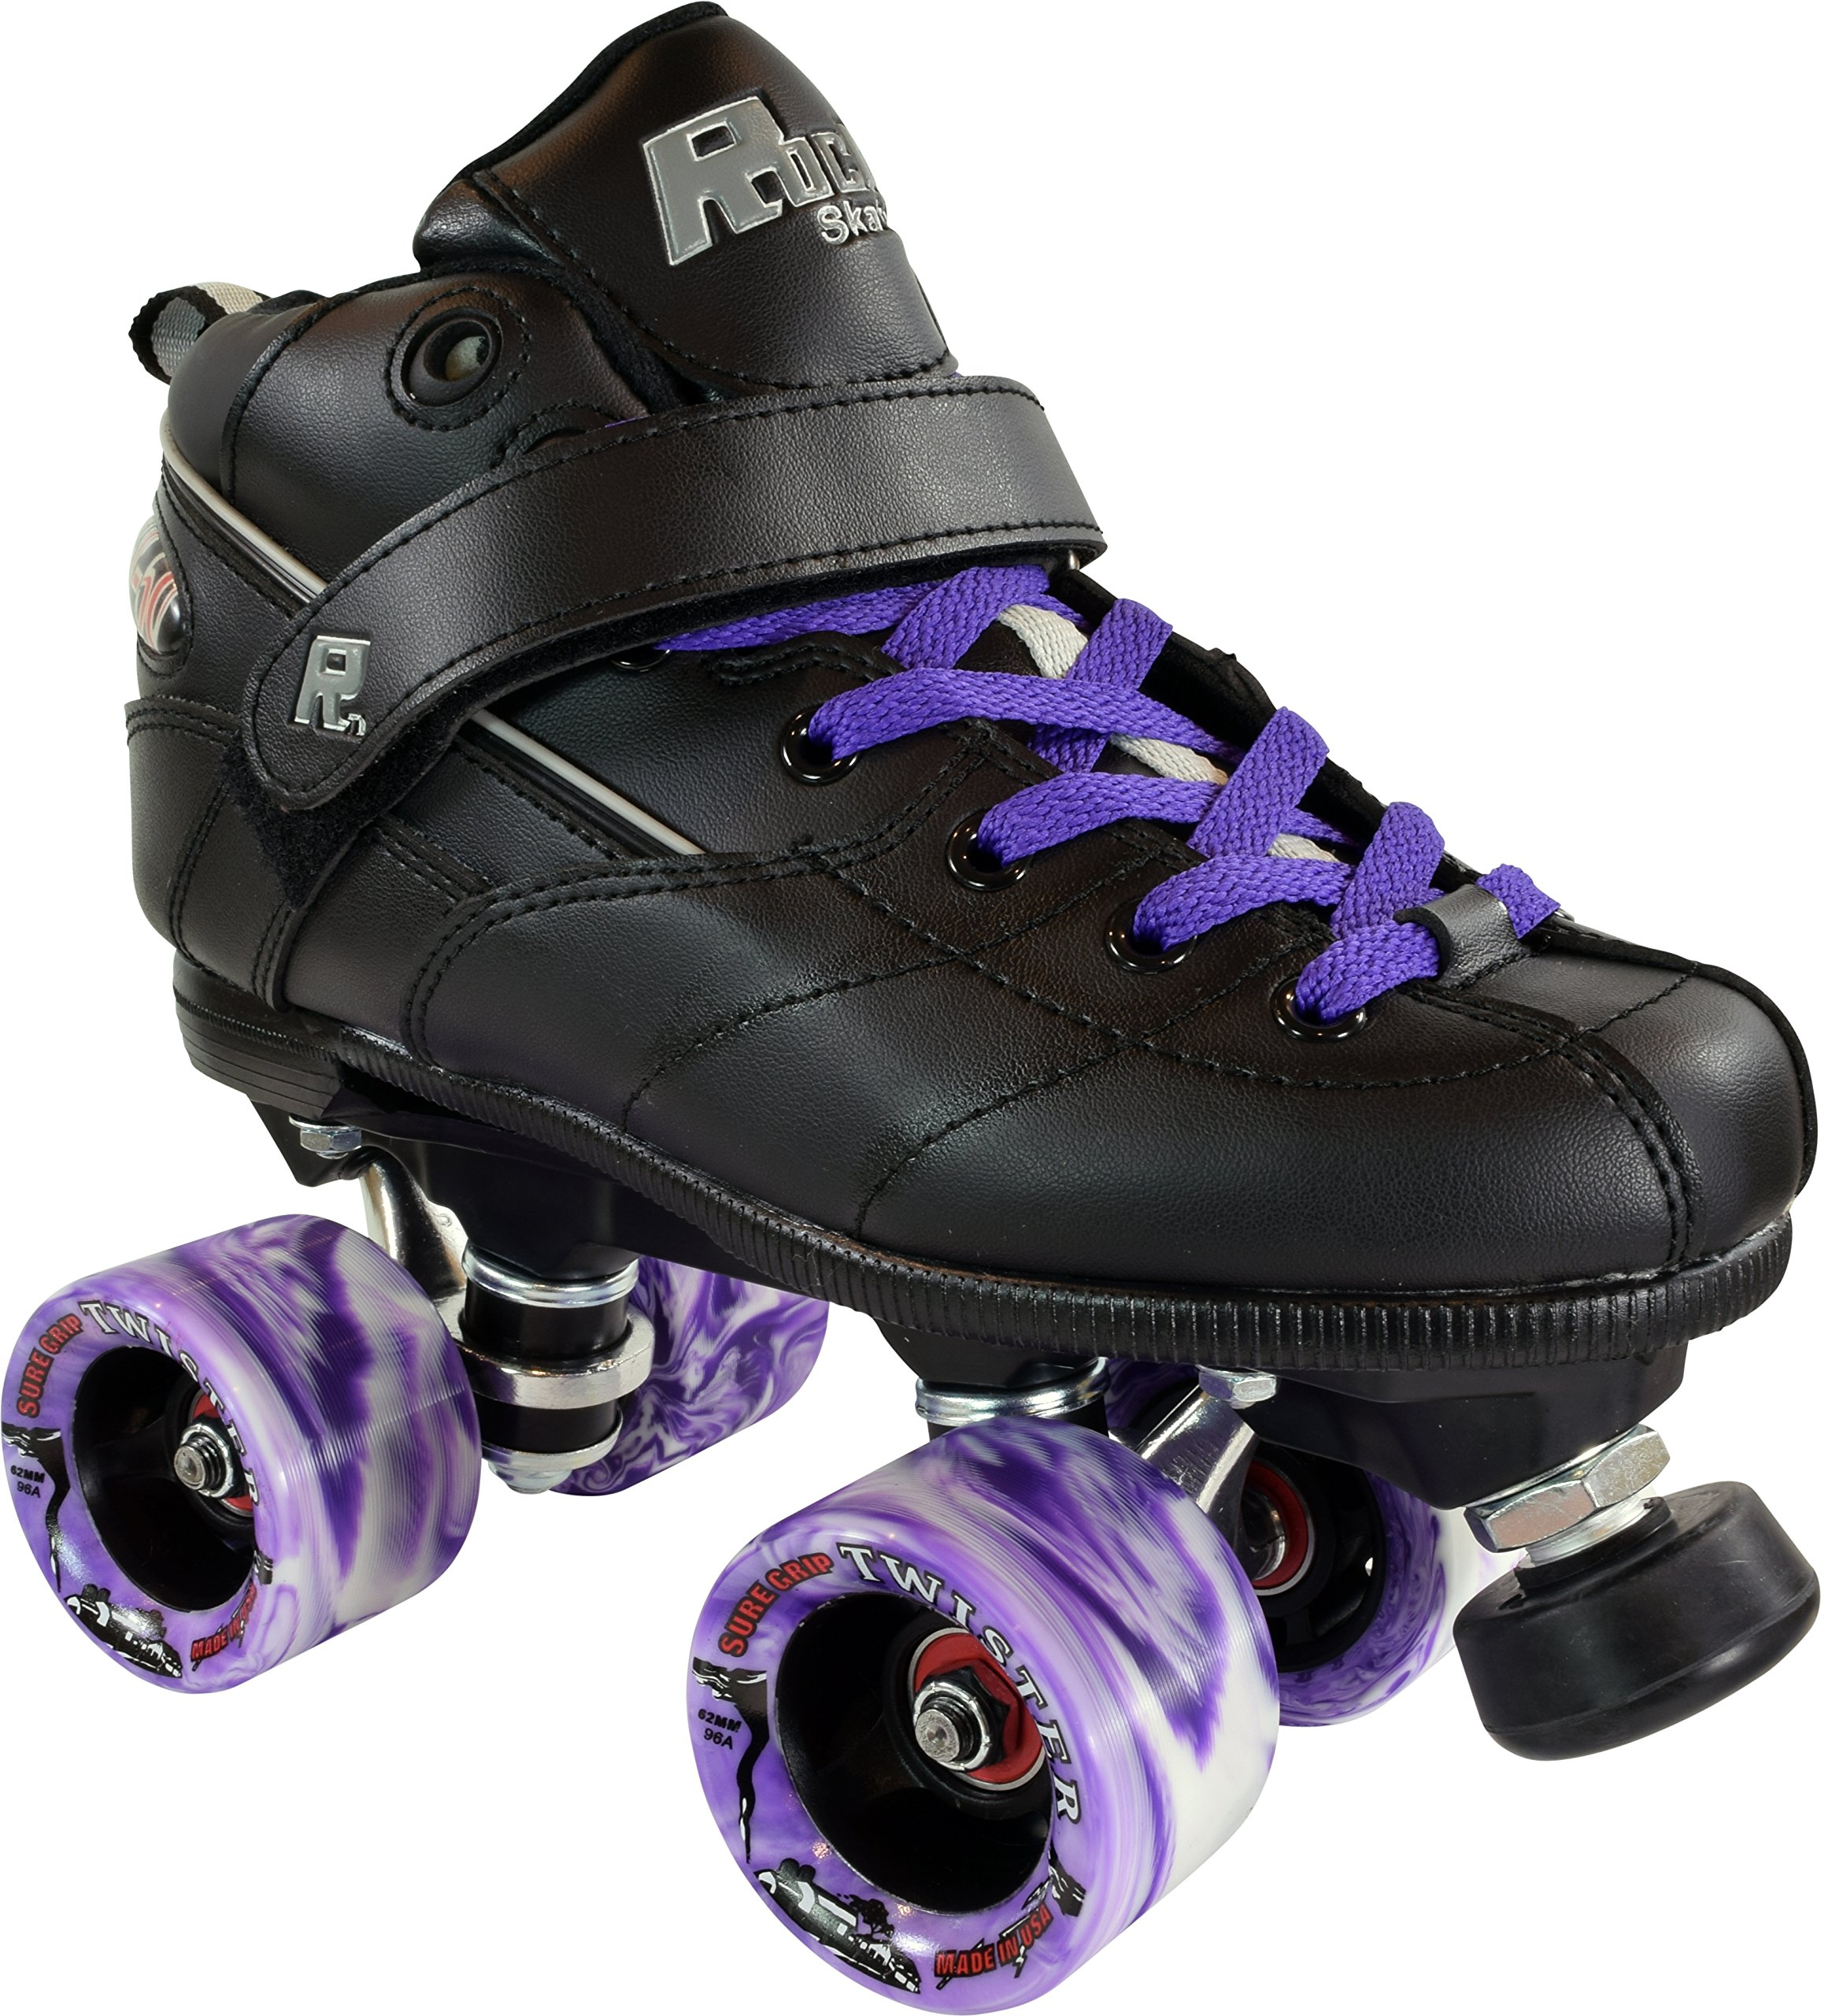 Rock GT-50 Roller Skates w/ Purple Wheels & Laces